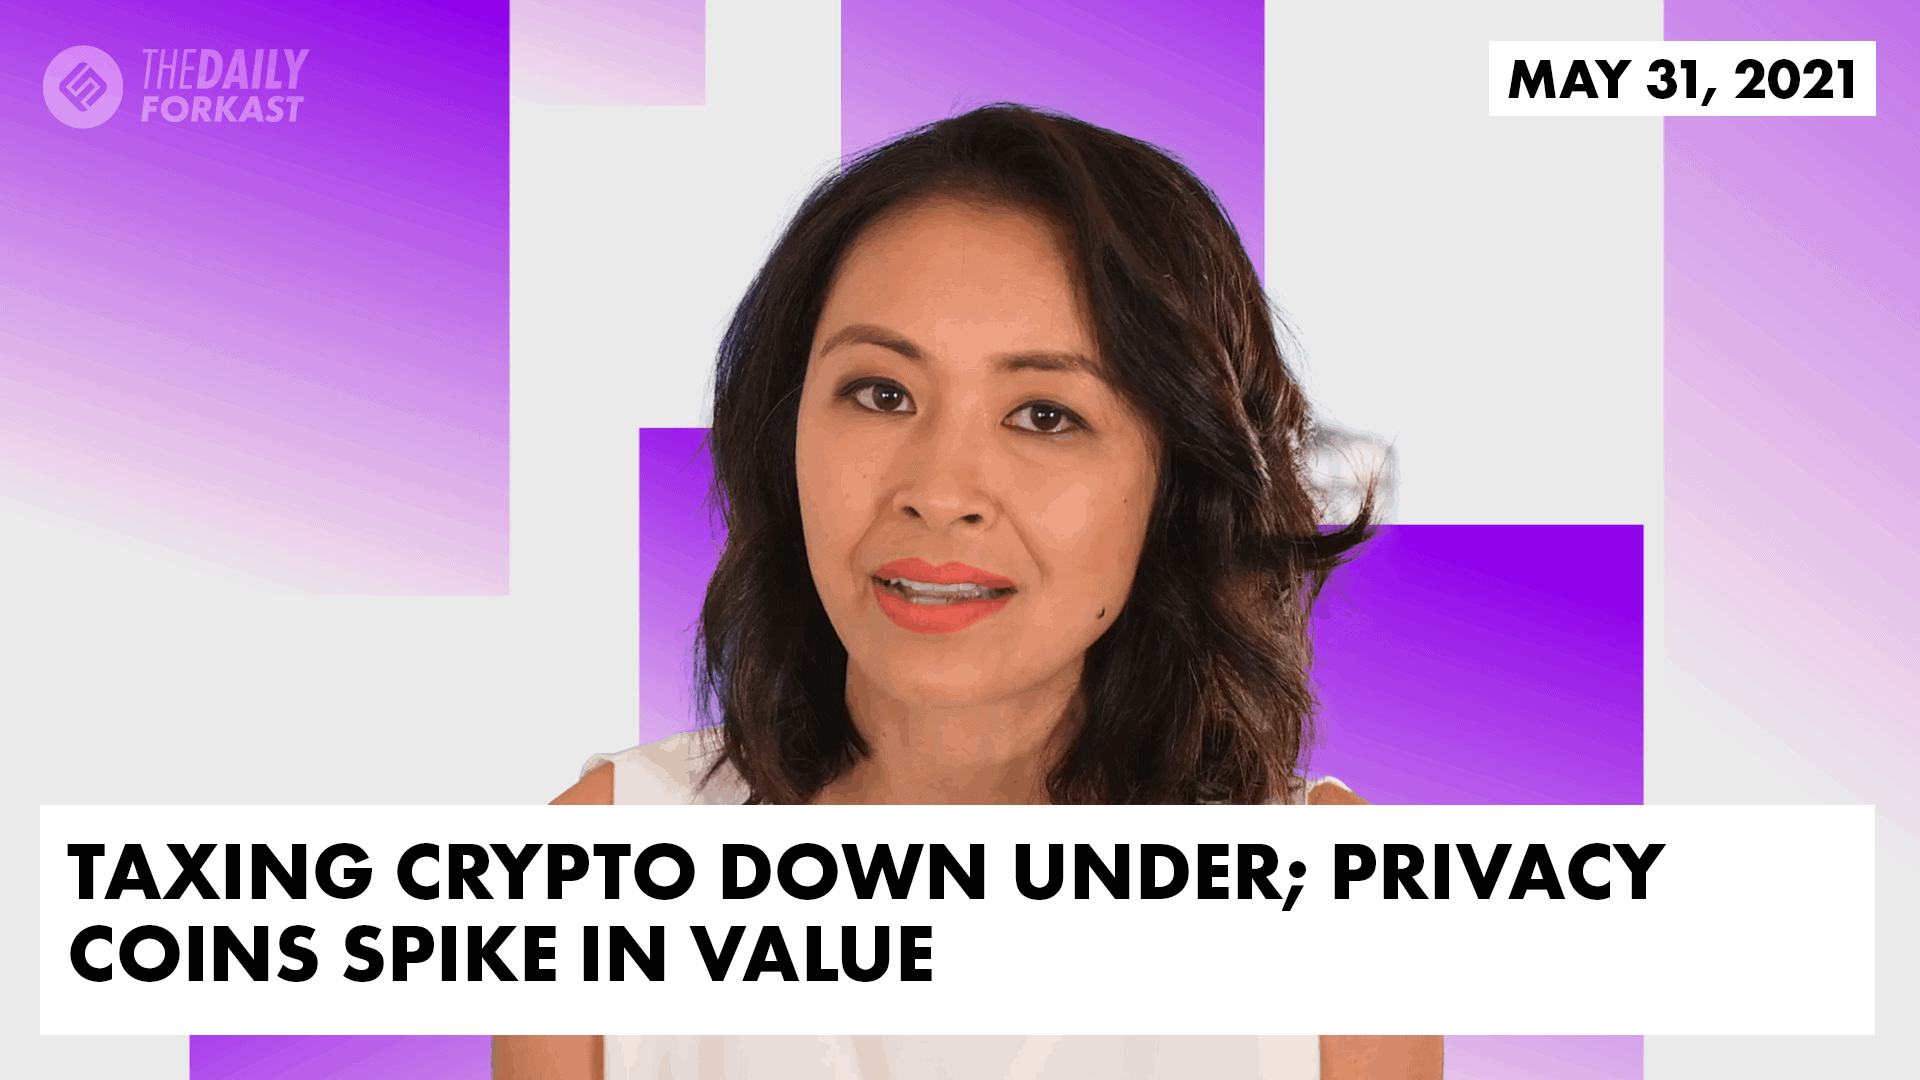 Taxing crypto down under Privacy coins spike in value